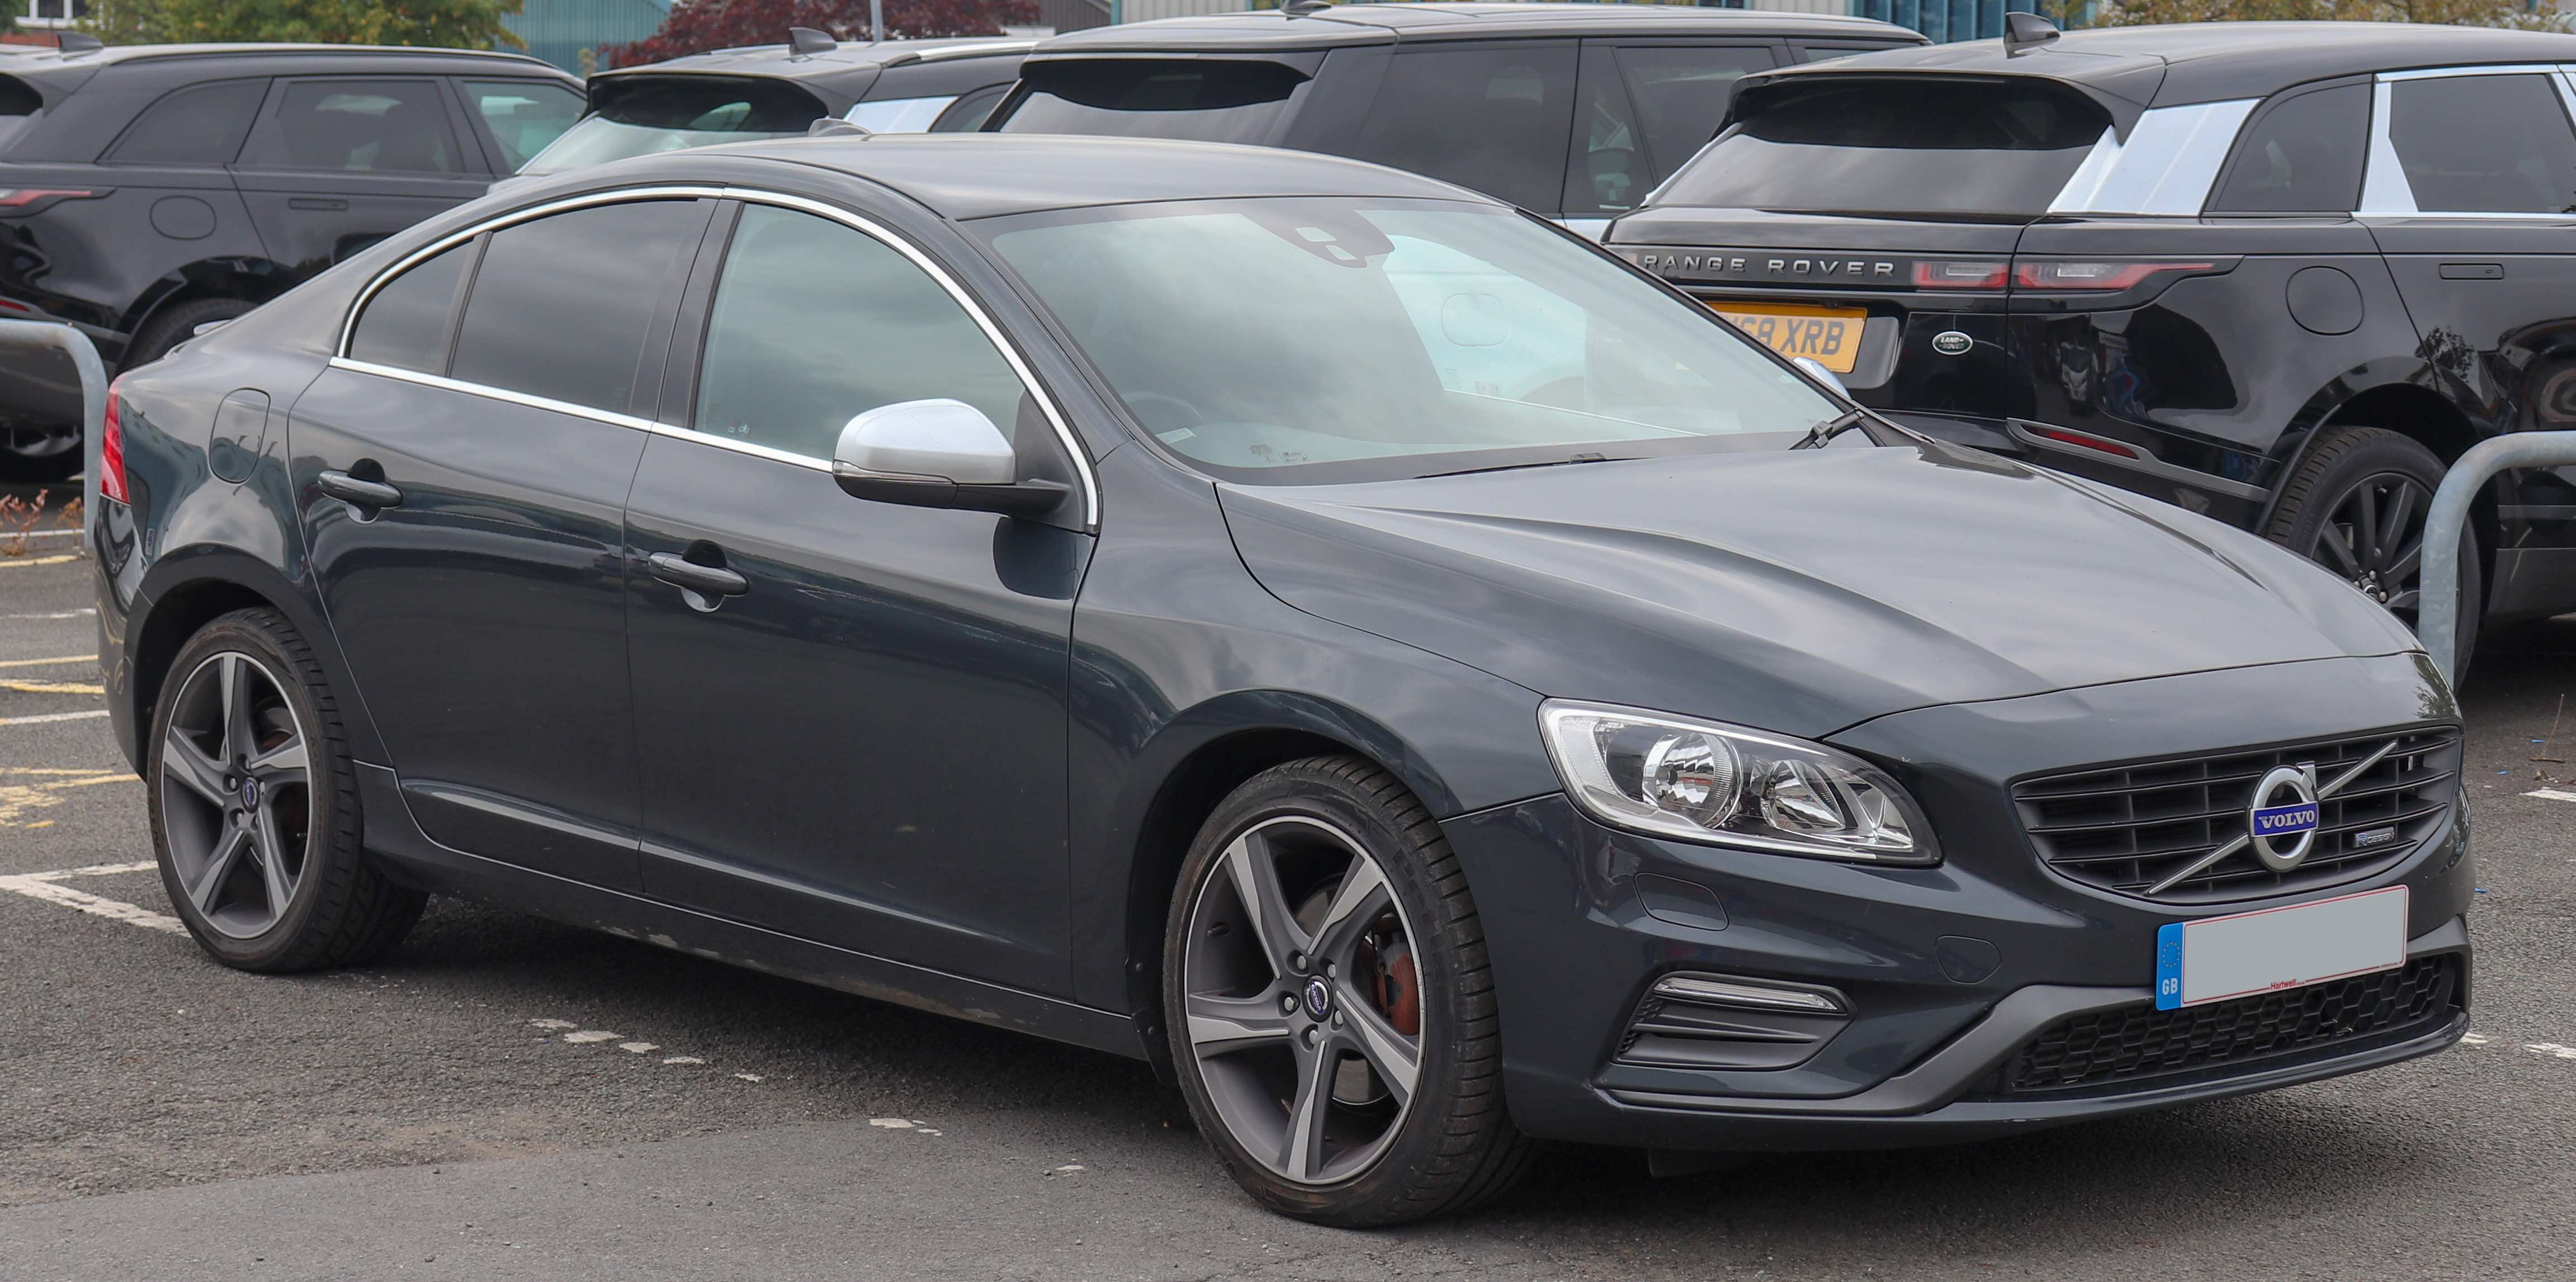 81 The 2020 Volvo S60 Length Spesification with 2020 Volvo S60 Length